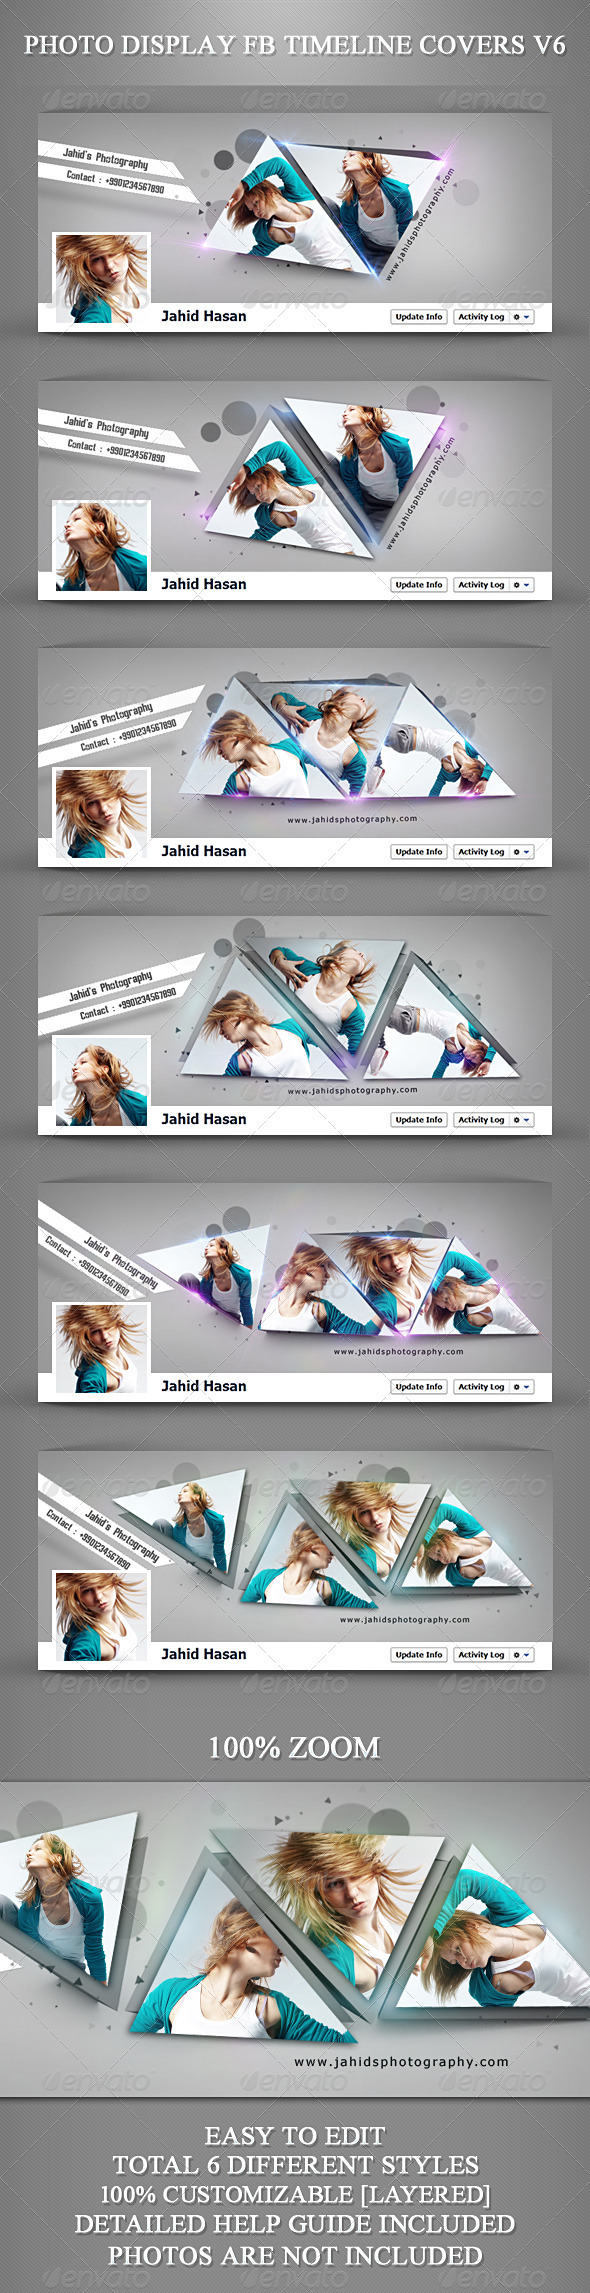 GraphicRiver Photo Display FB Timeline Covers V6 3744698